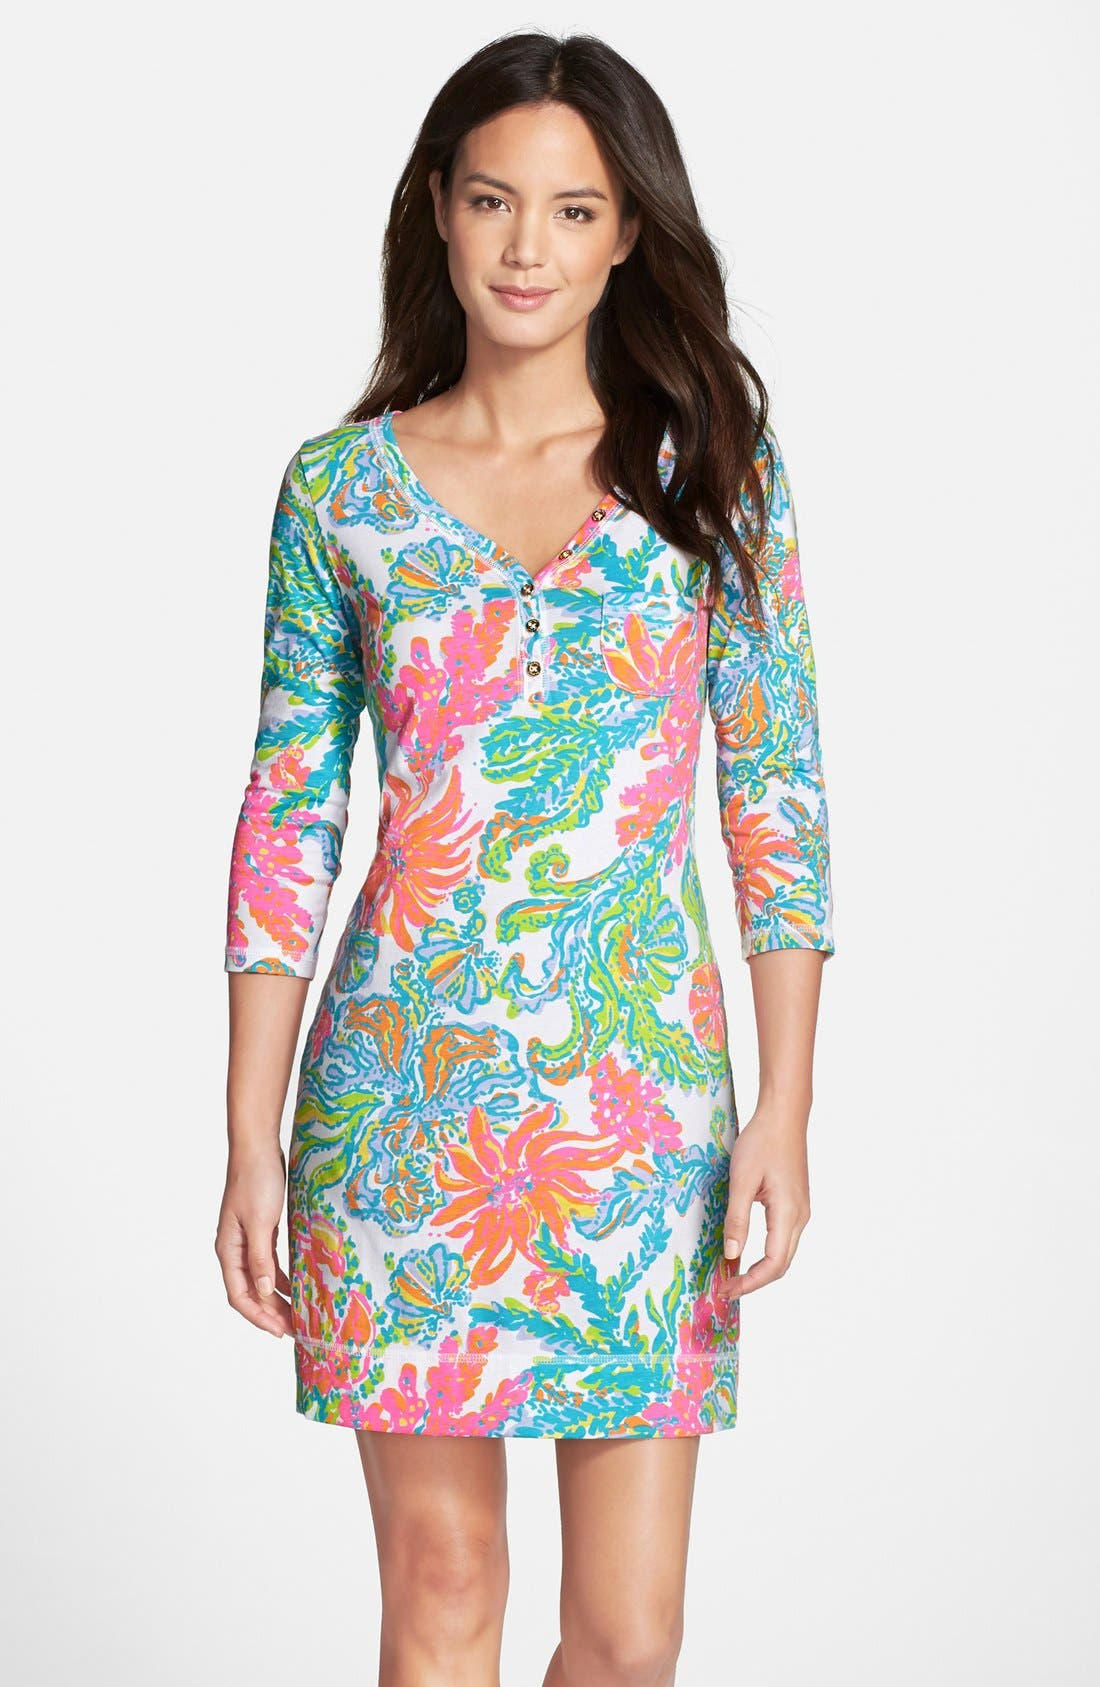 Main Image - Lilly Pulitzer® 'Palmetto' Print Pima Cotton T-Shirt Dress